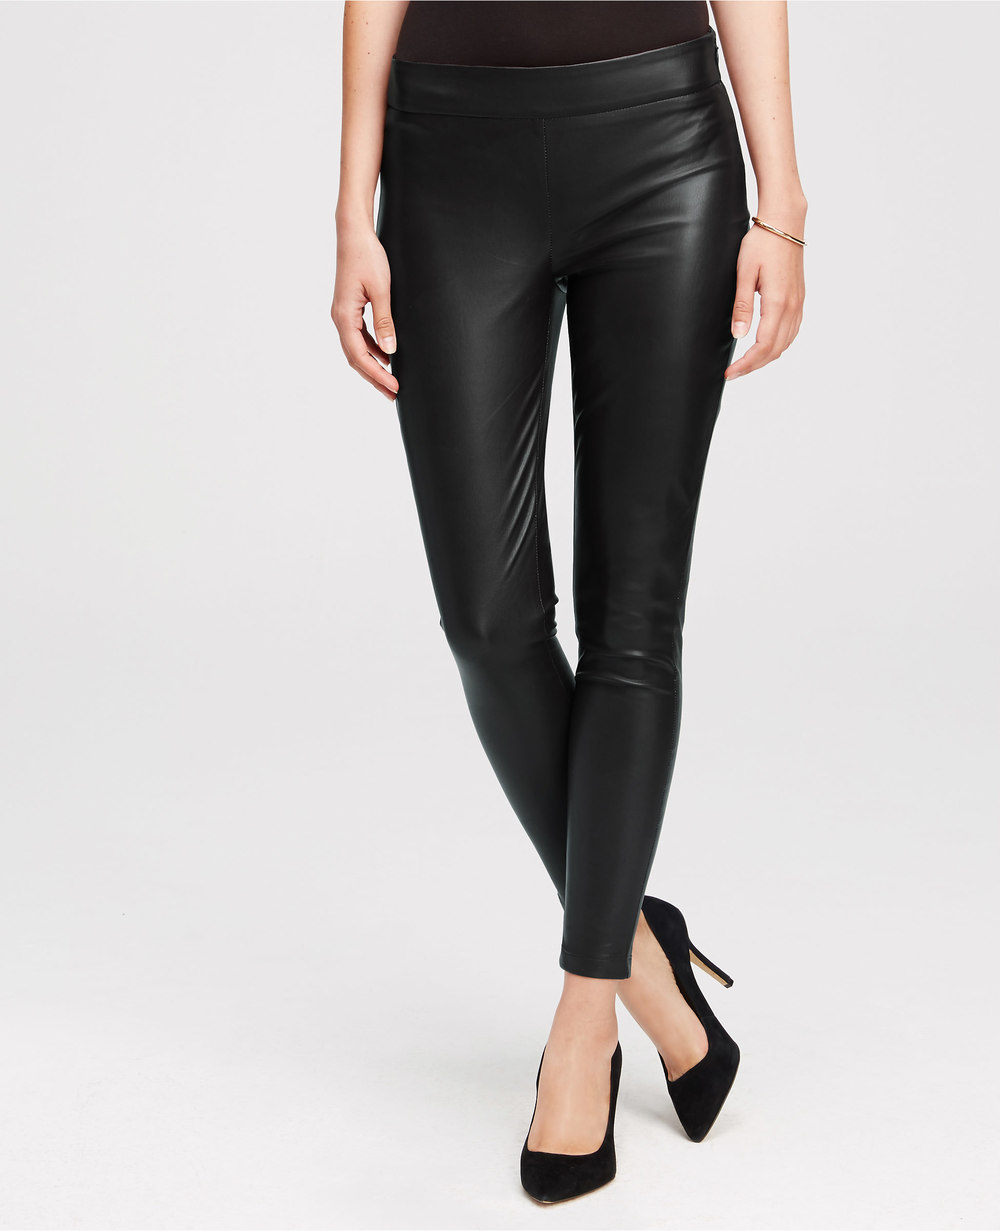 Tall Vegan Leather Leggings. Available in black, rusty red. Ann Taylor. $98. Additional 30% off right now.